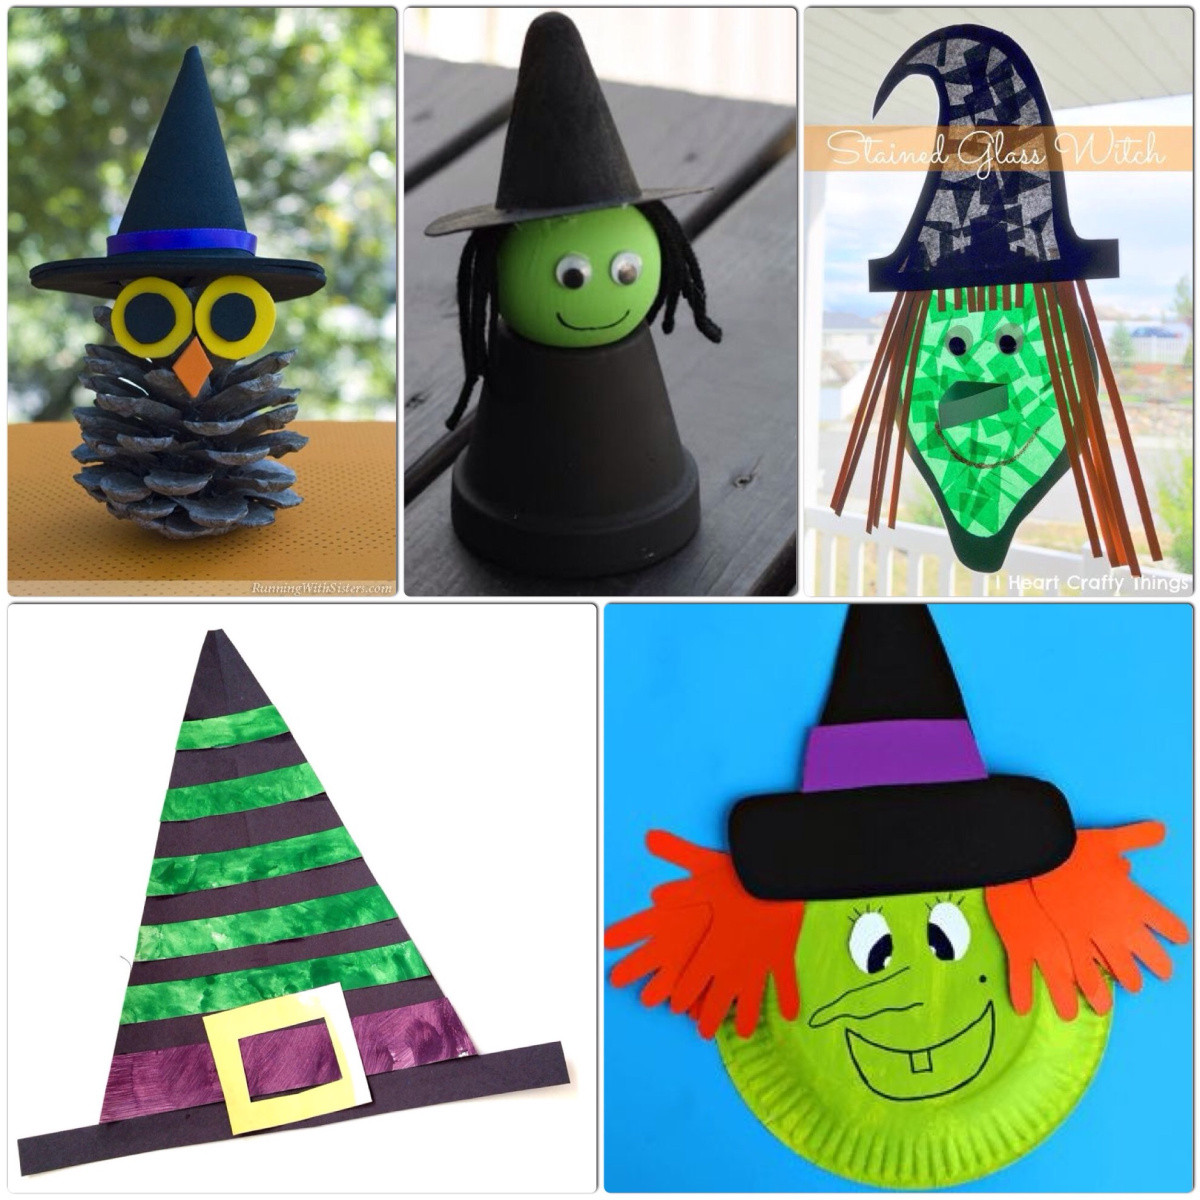 Best ideas about Crafts For Kids . Save or Pin Witch Crafts for Kids – More Halloween Fun Now.